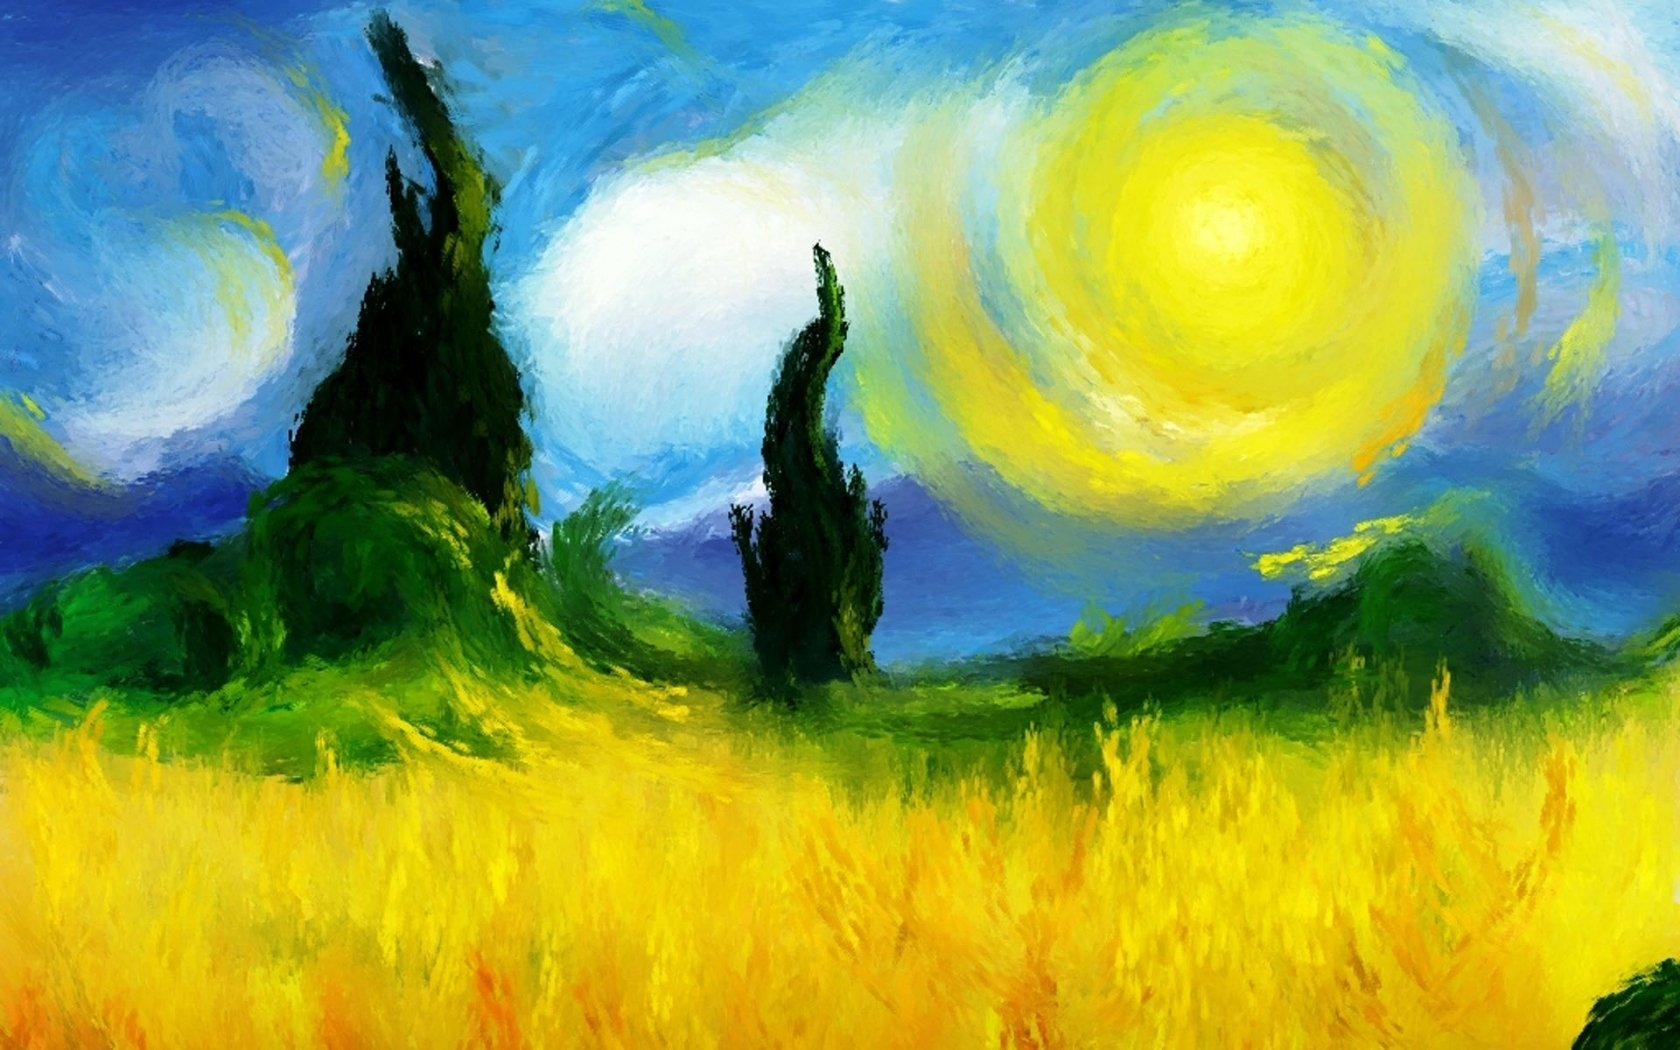 Artistic - Painting  Sun Field Artistic Wallpaper